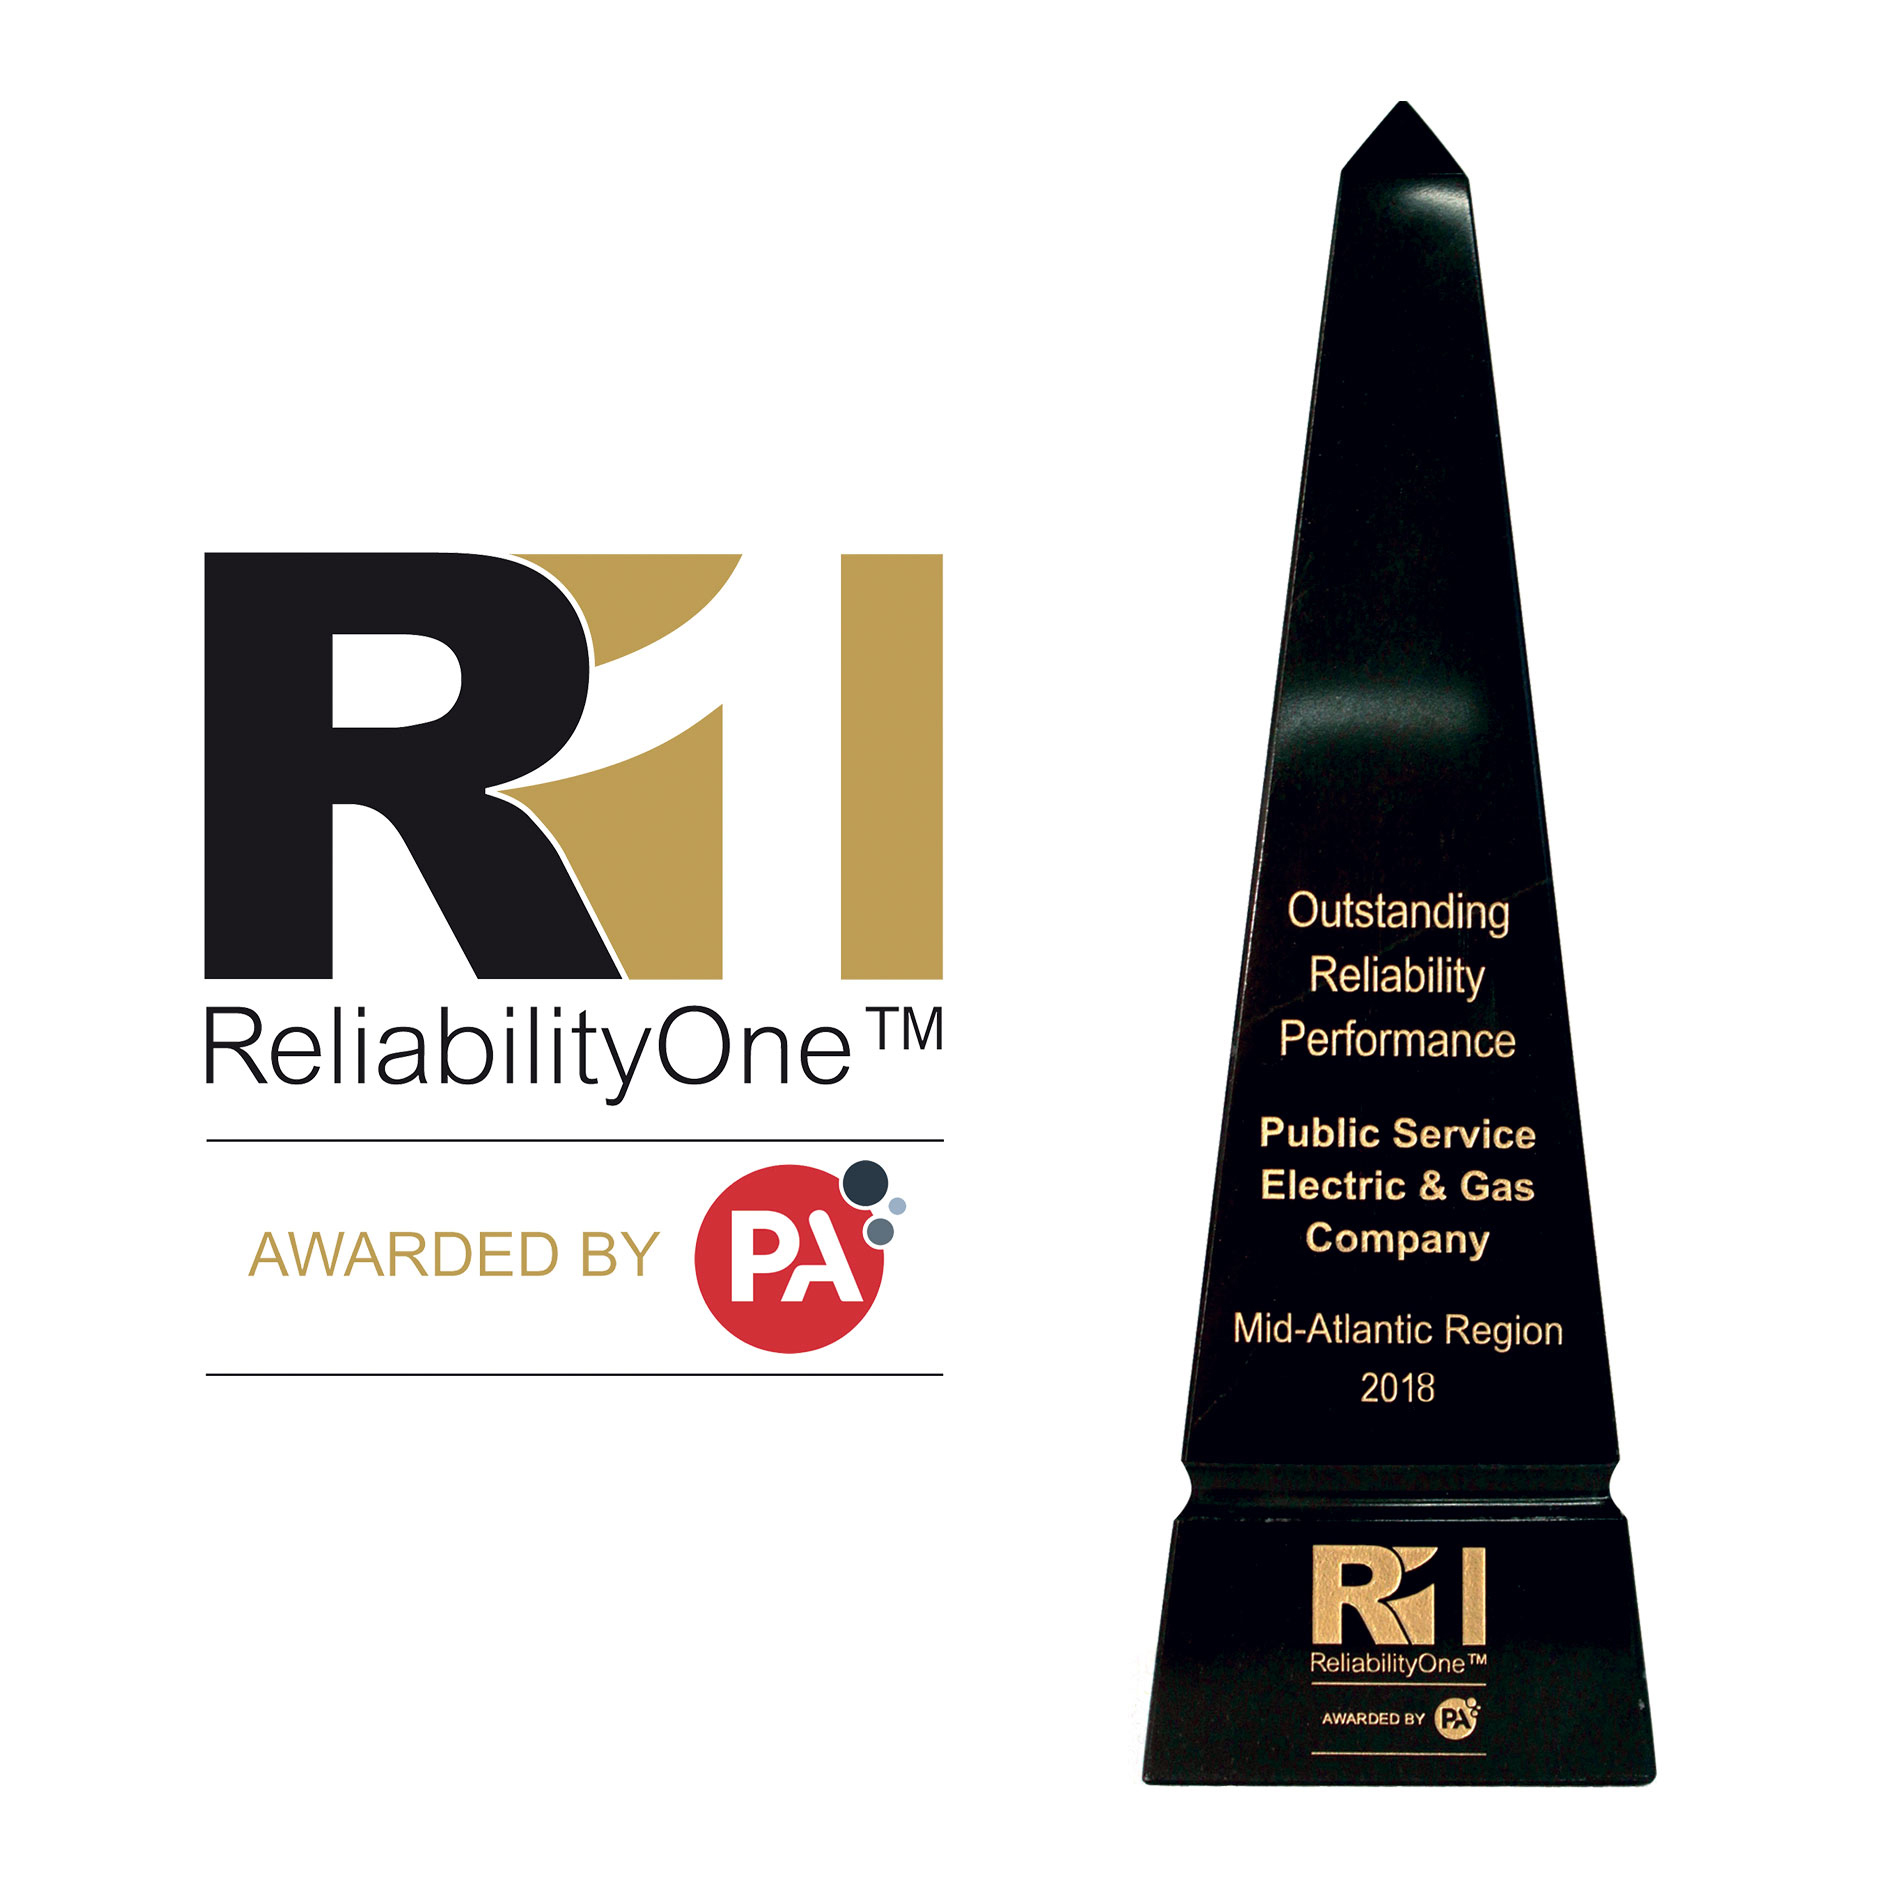 PSE&G receives the ReliabilityOne™ Award for Outstanding Reliability Performance in the Mid-Atlantic Region for the 17th consecutive year.